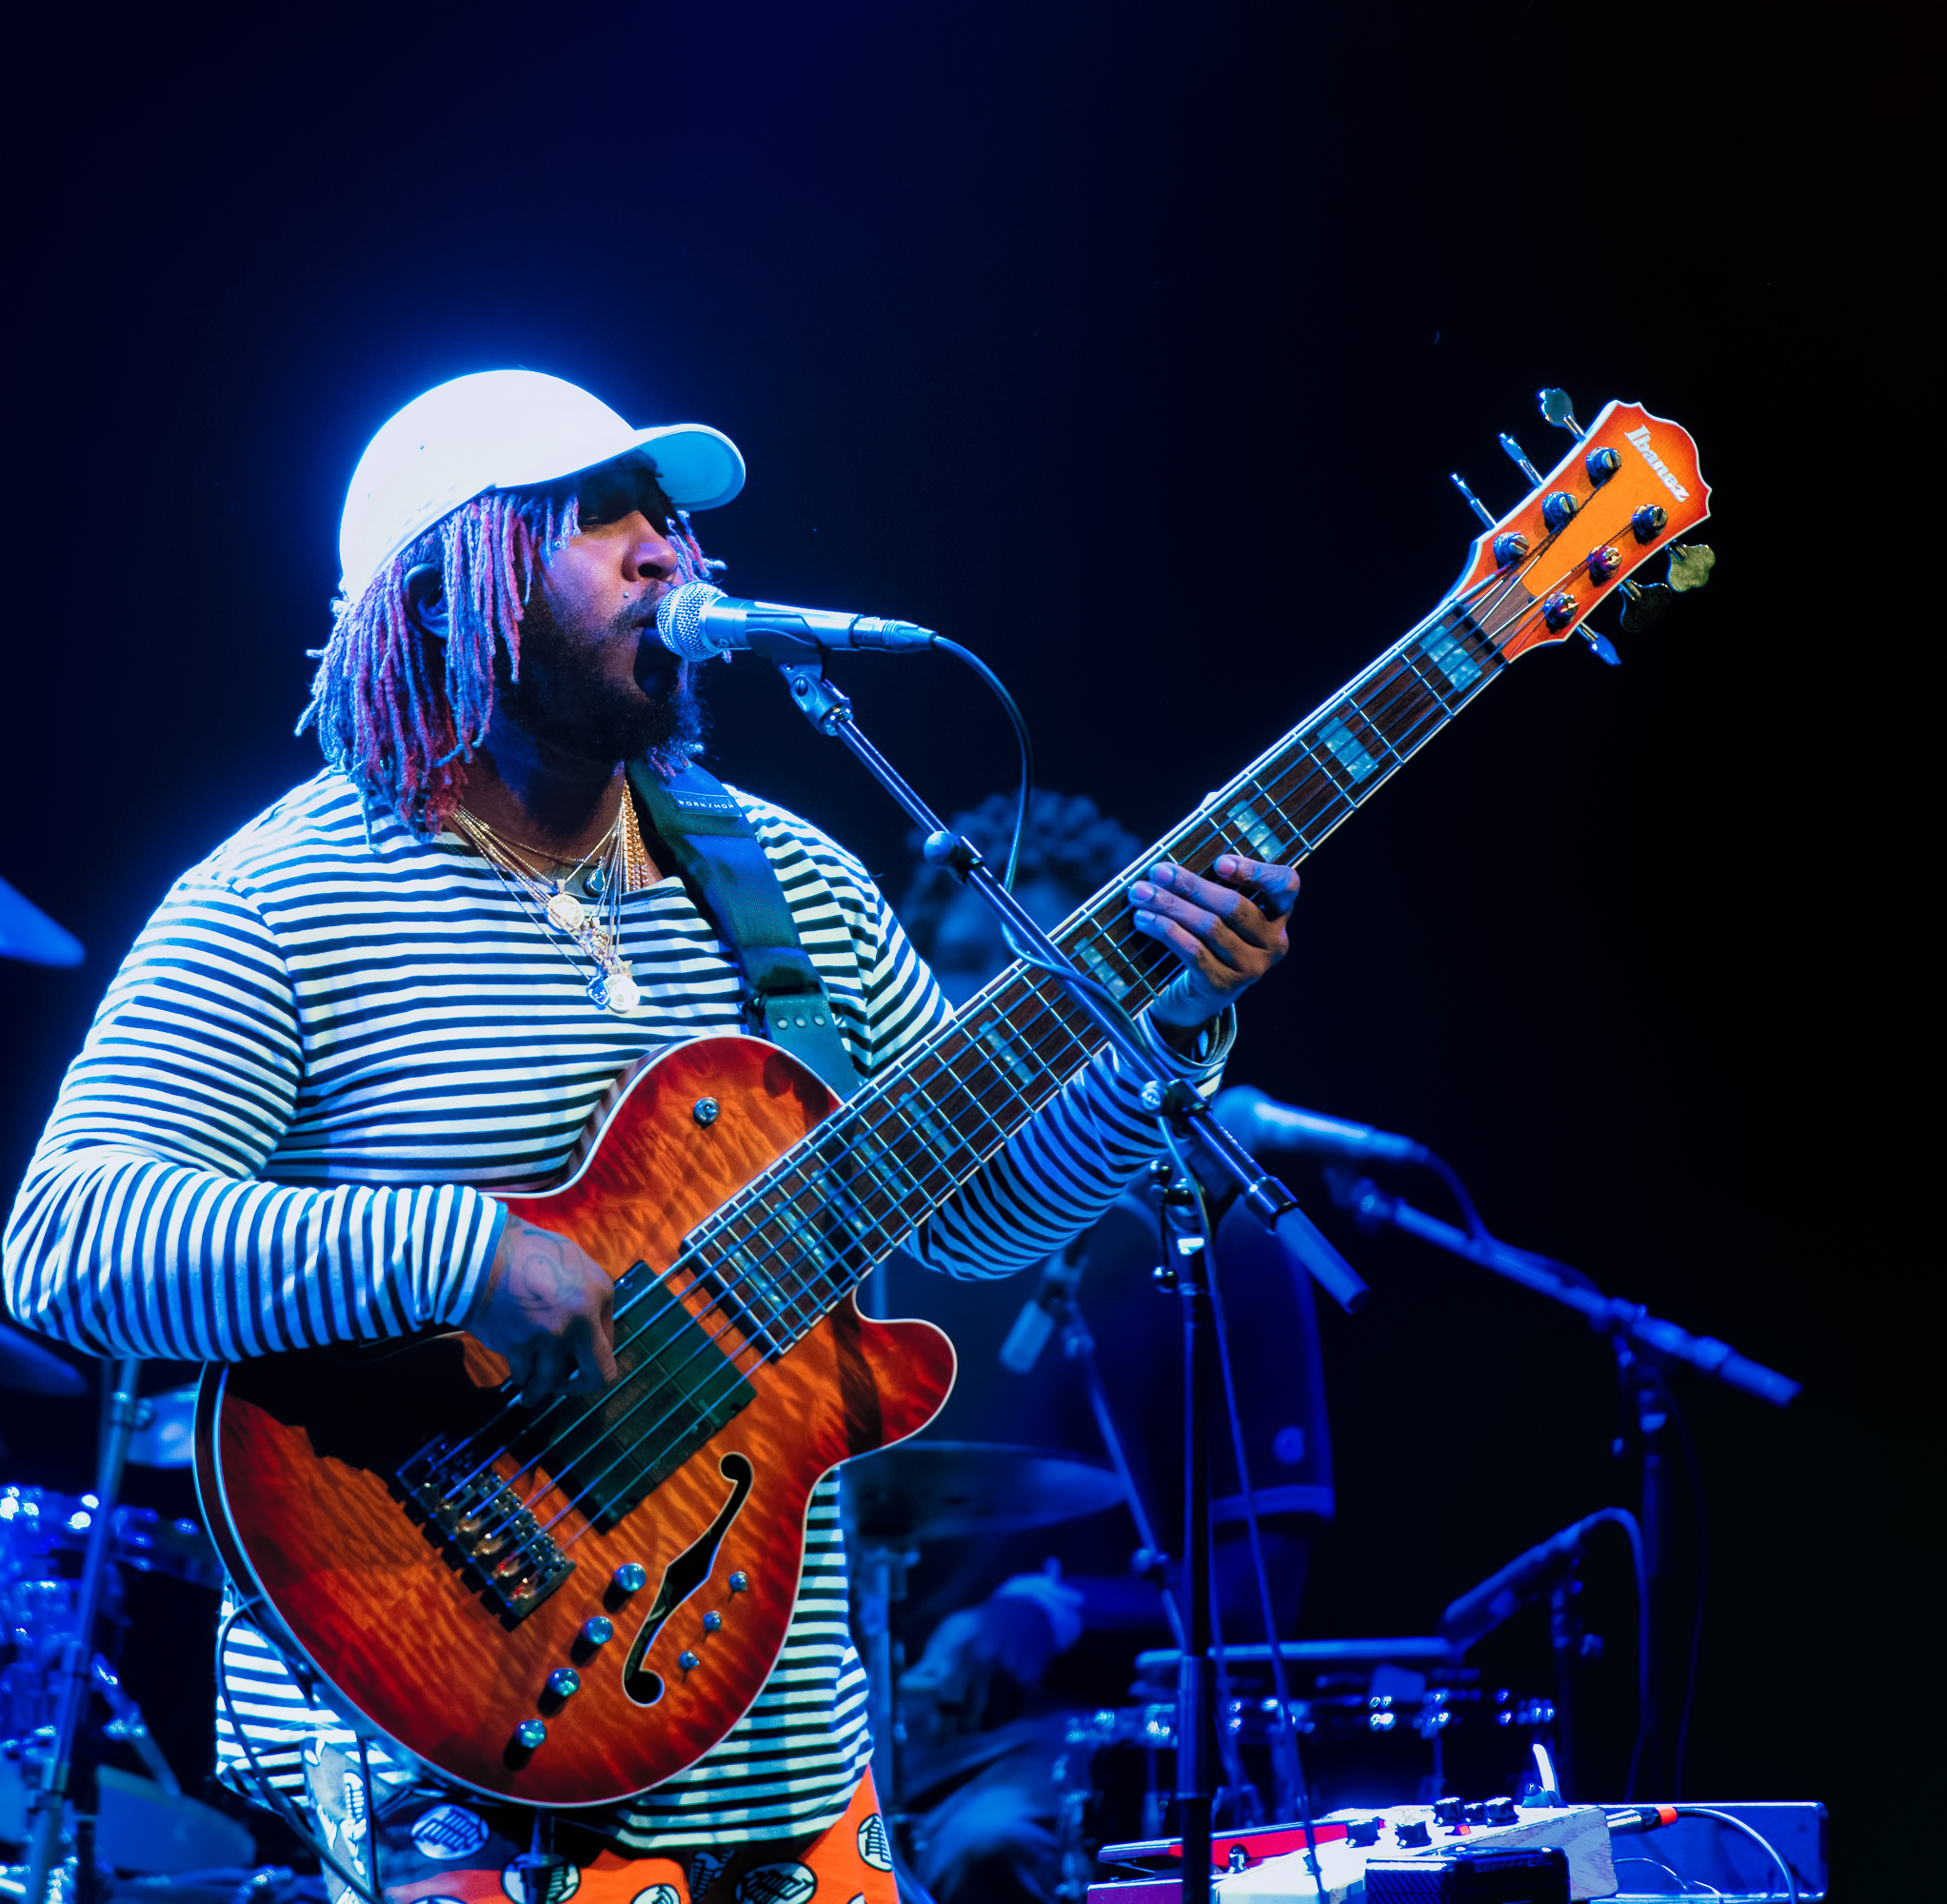 Steven Bruner AKA Thundercat at The Montreal International Jazz Festival 2018